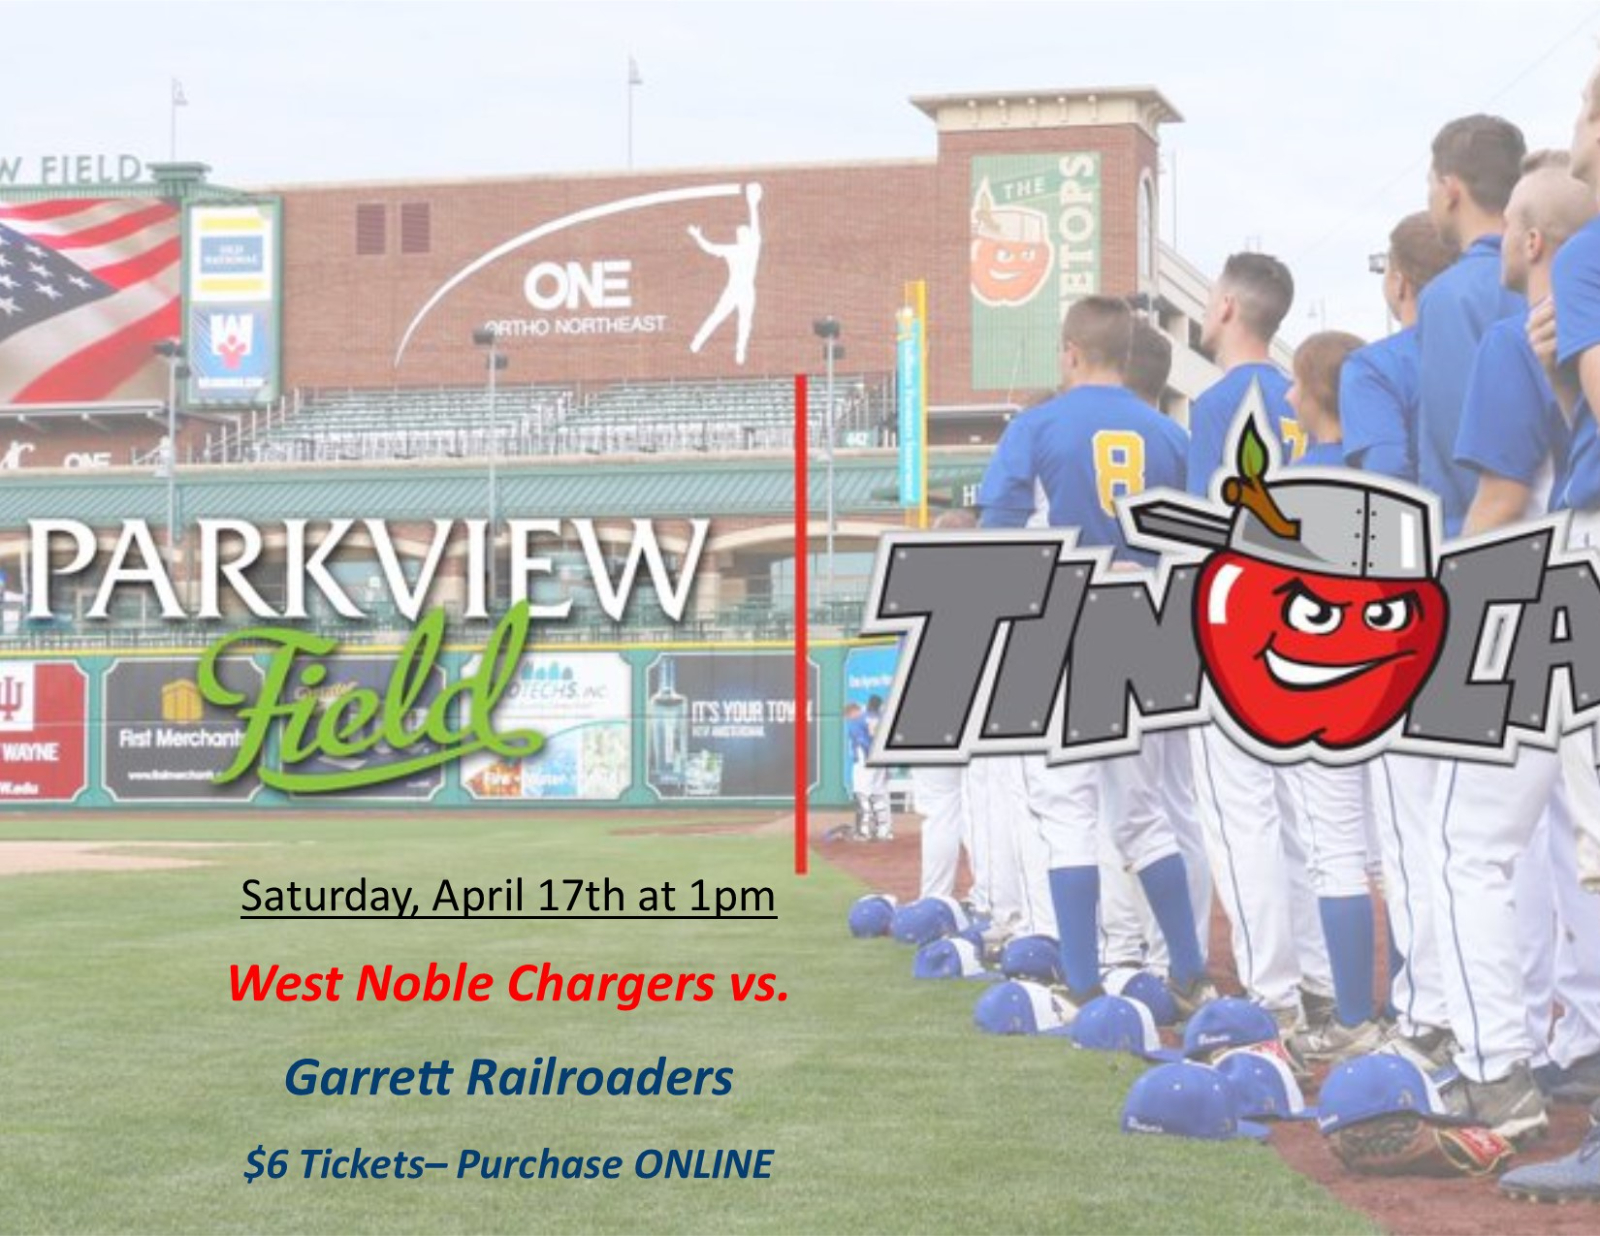 West Noble Baseball is Playing at Parkview Field on 4/17